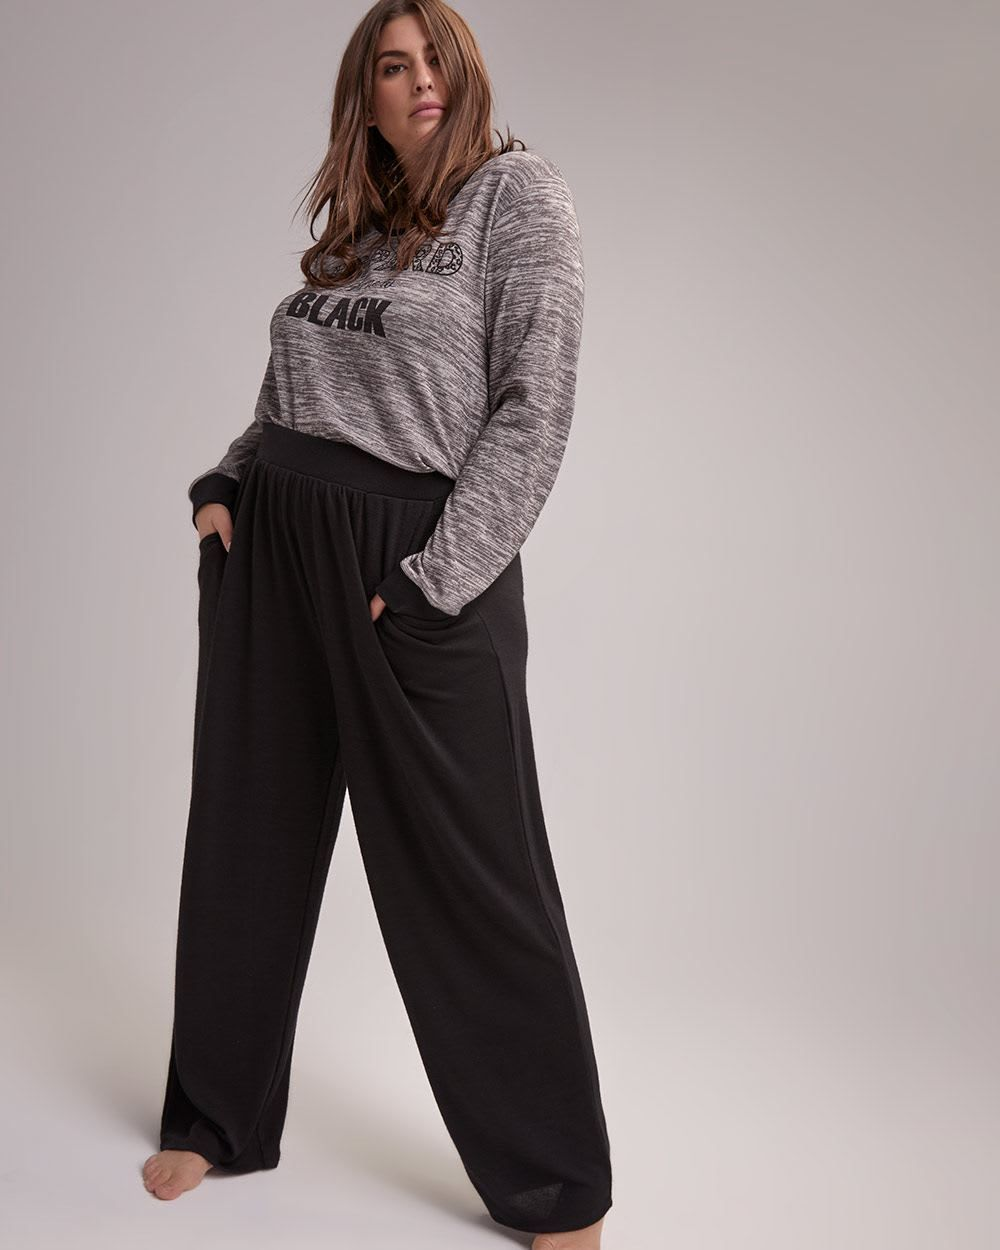 Shop online for High-Rise Straight Leg Pajama Pants - Déesse Collection.  Find Sleepwear 116c84e23